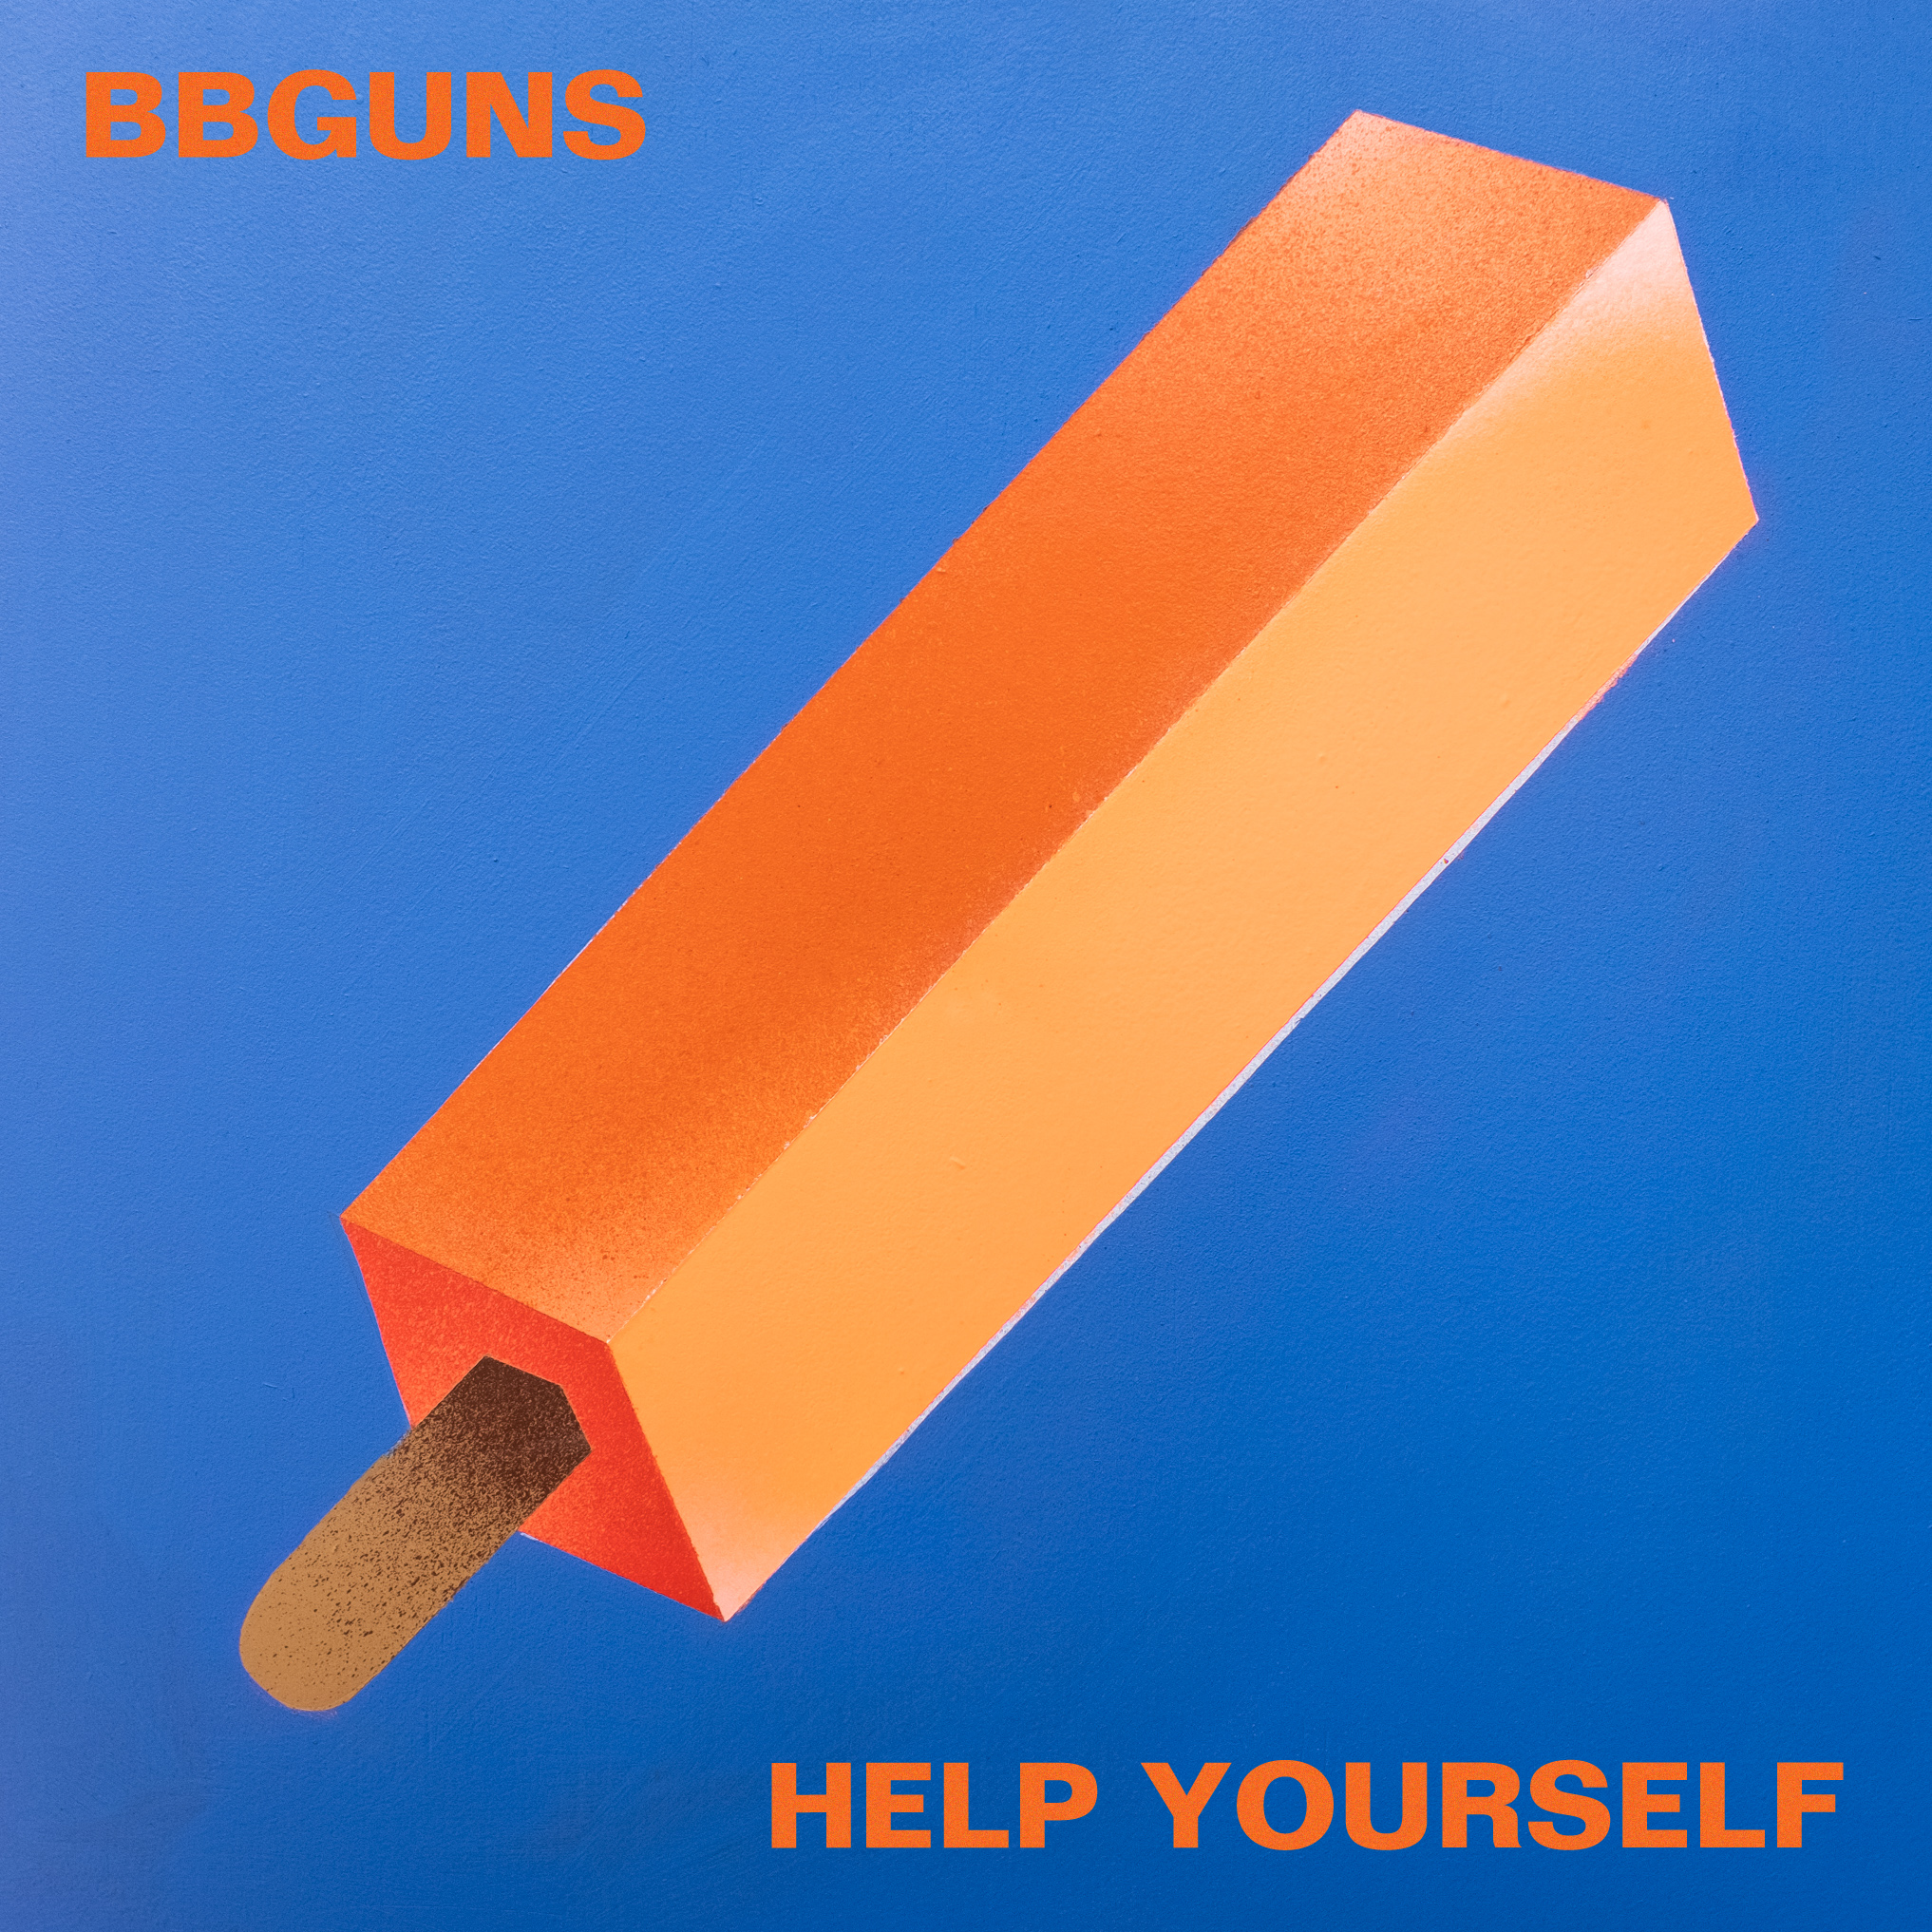 BBGuns - Help Yourself